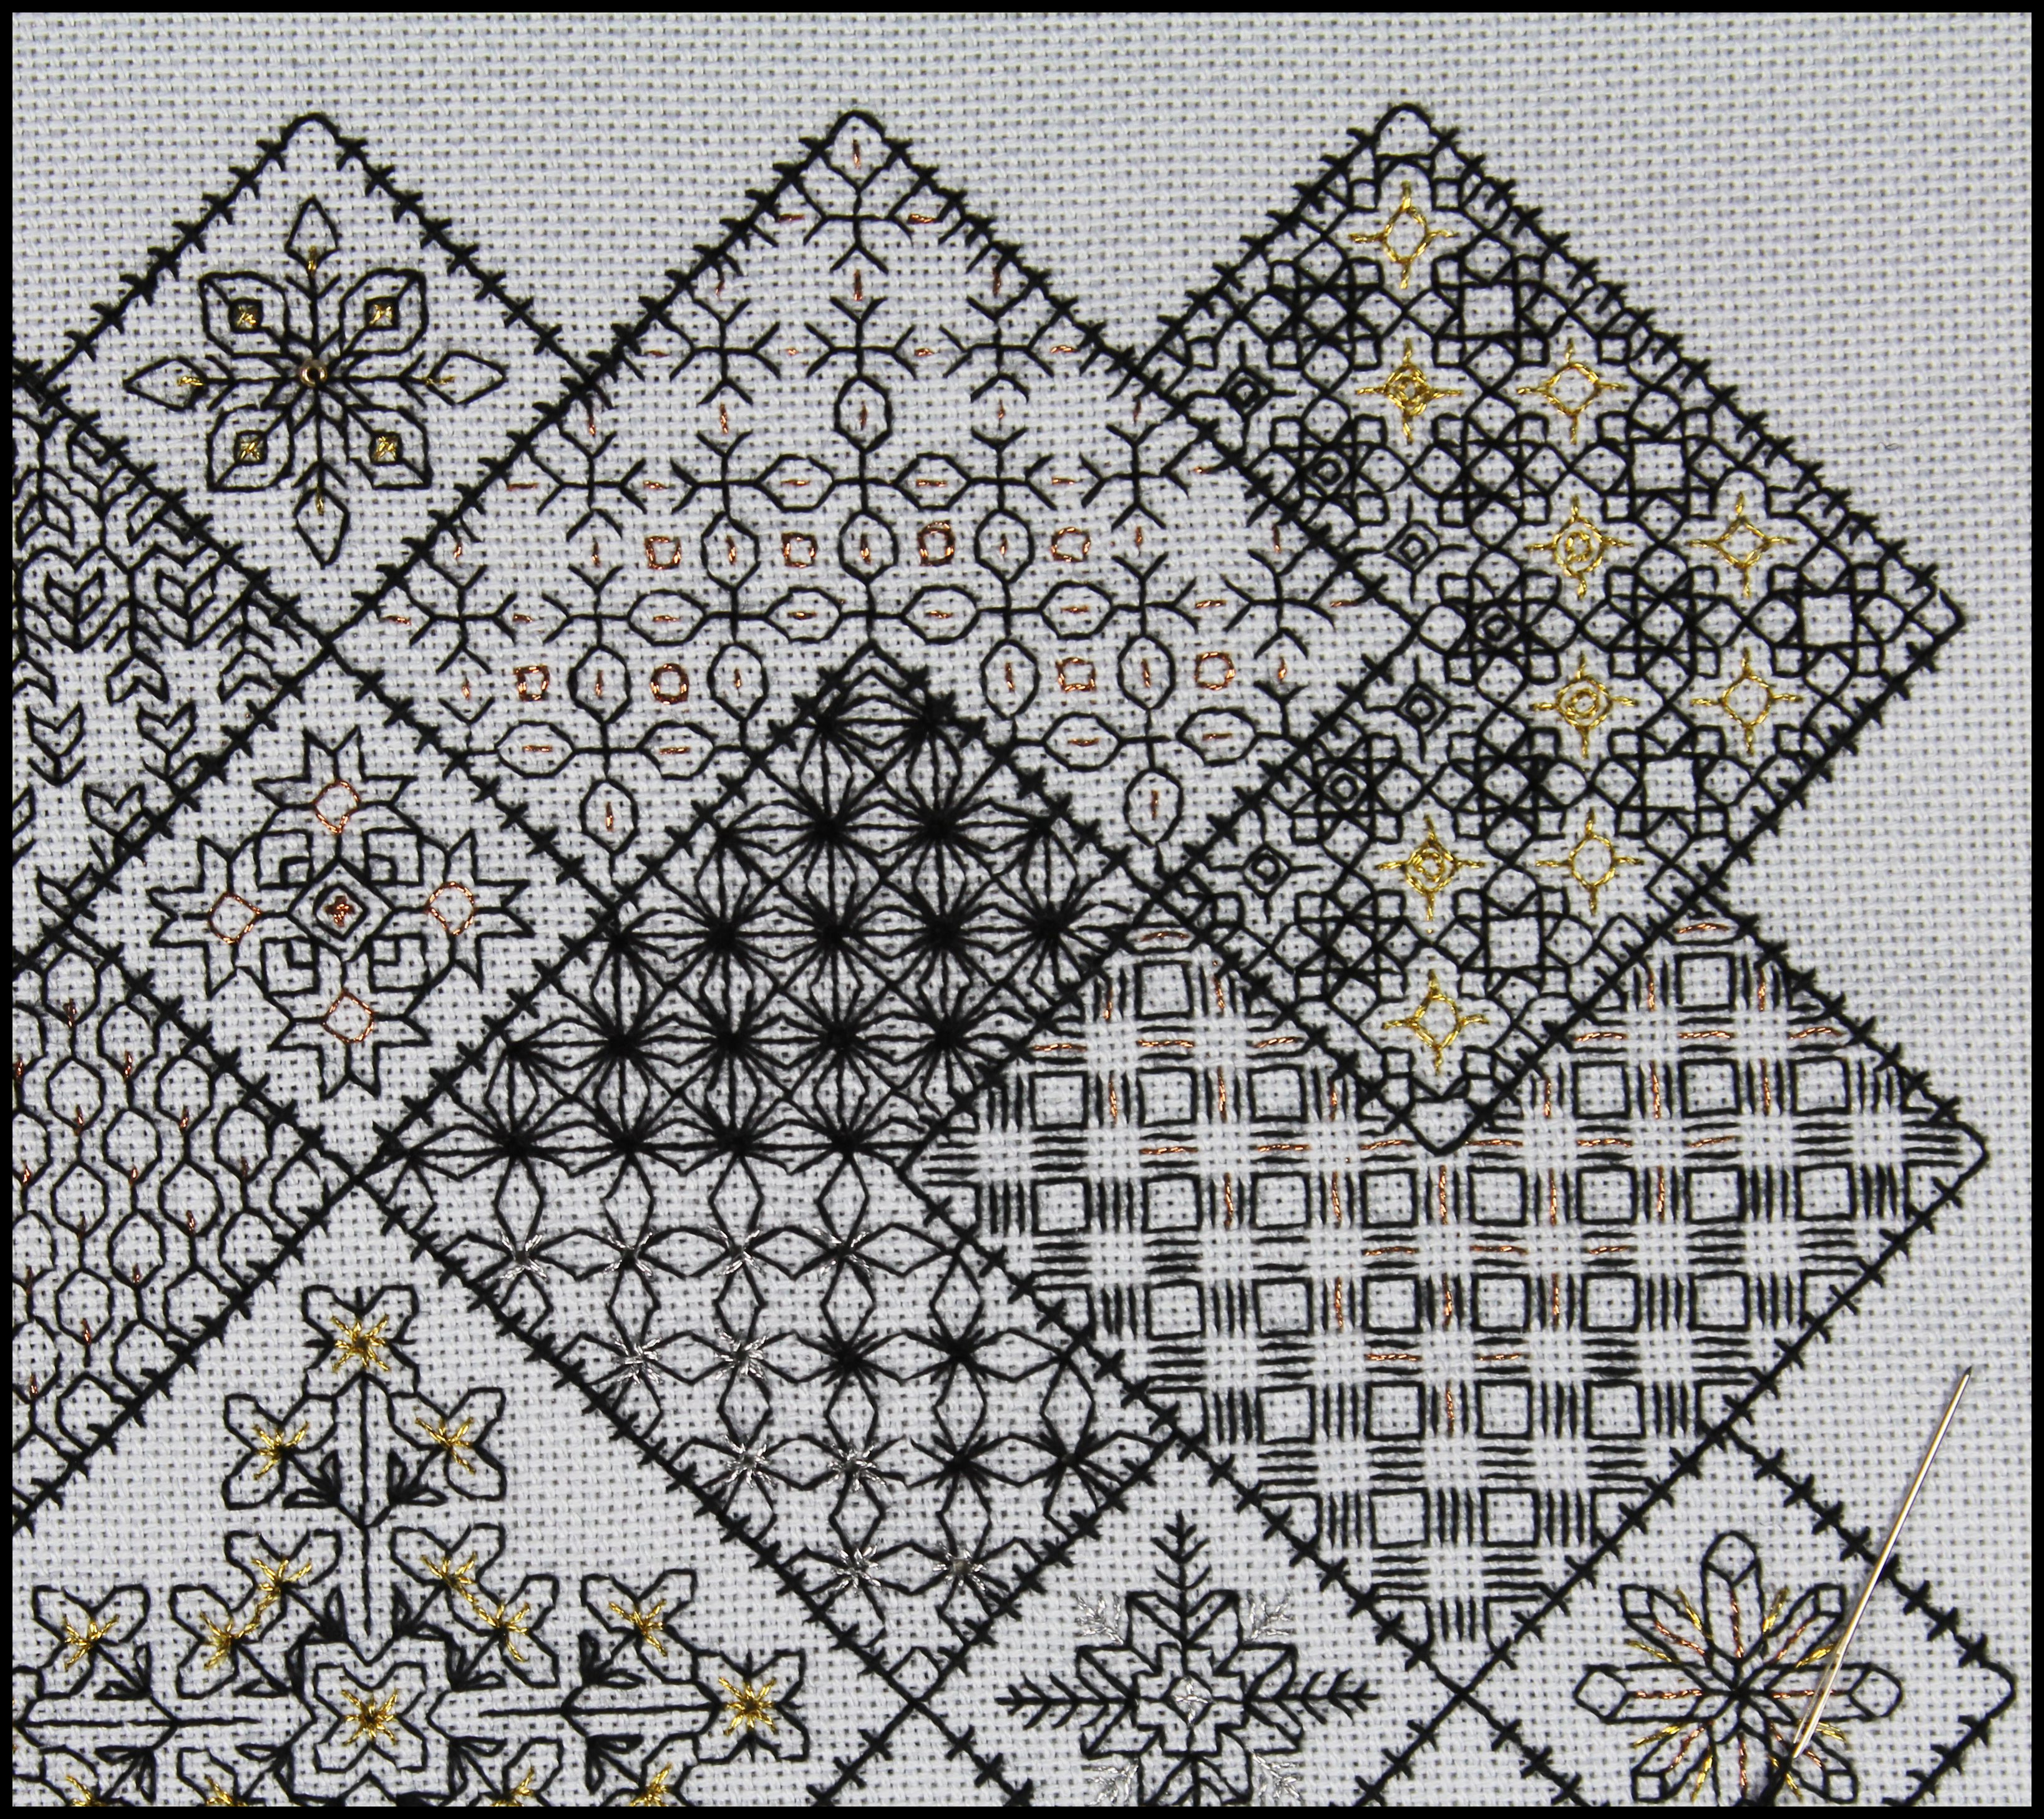 Save the stitches free project block 3 embroidered download the save the stitches free project block 3 embroidered download the pdf from blackworkjourney blackwork patternsblackwork embroideryembroidery bankloansurffo Gallery